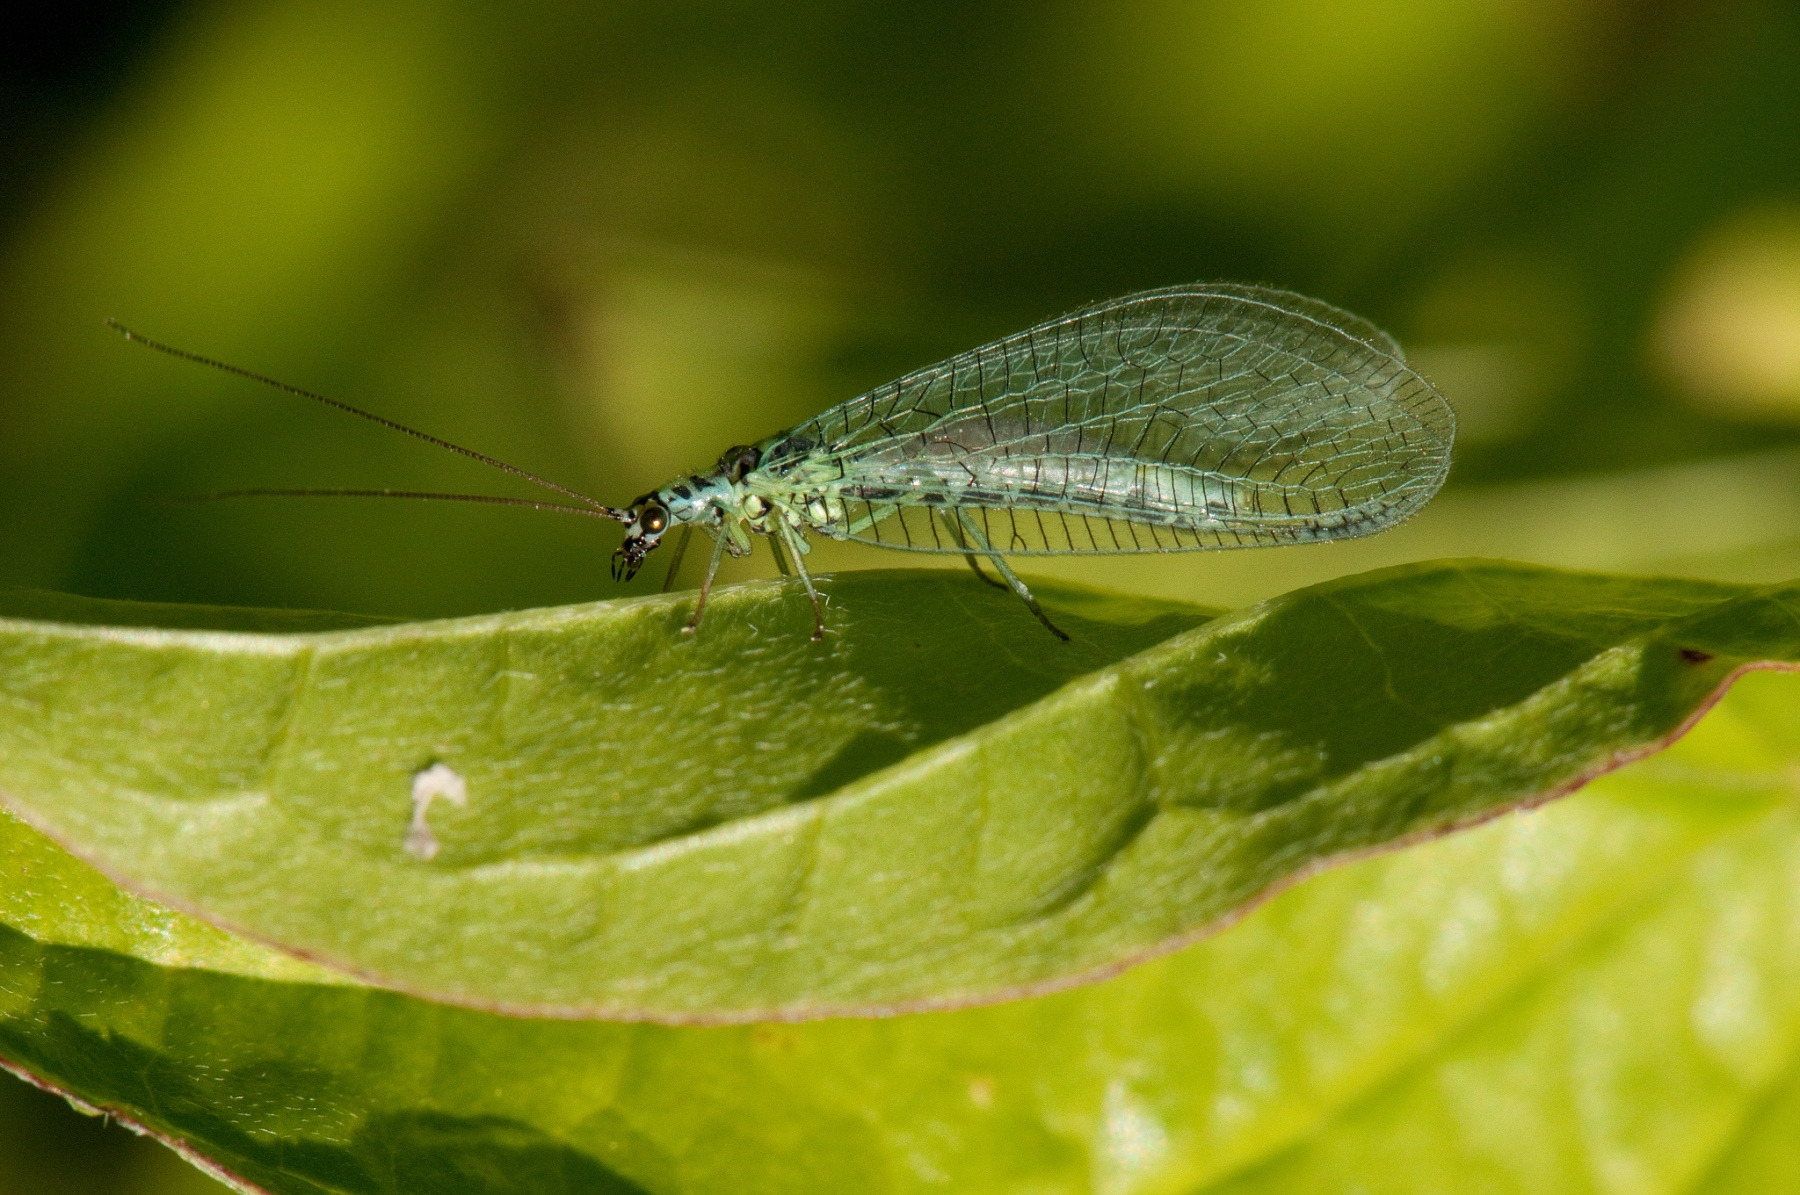 Chrysopa sp. - Green Lacewing, North Anston Pit Tip